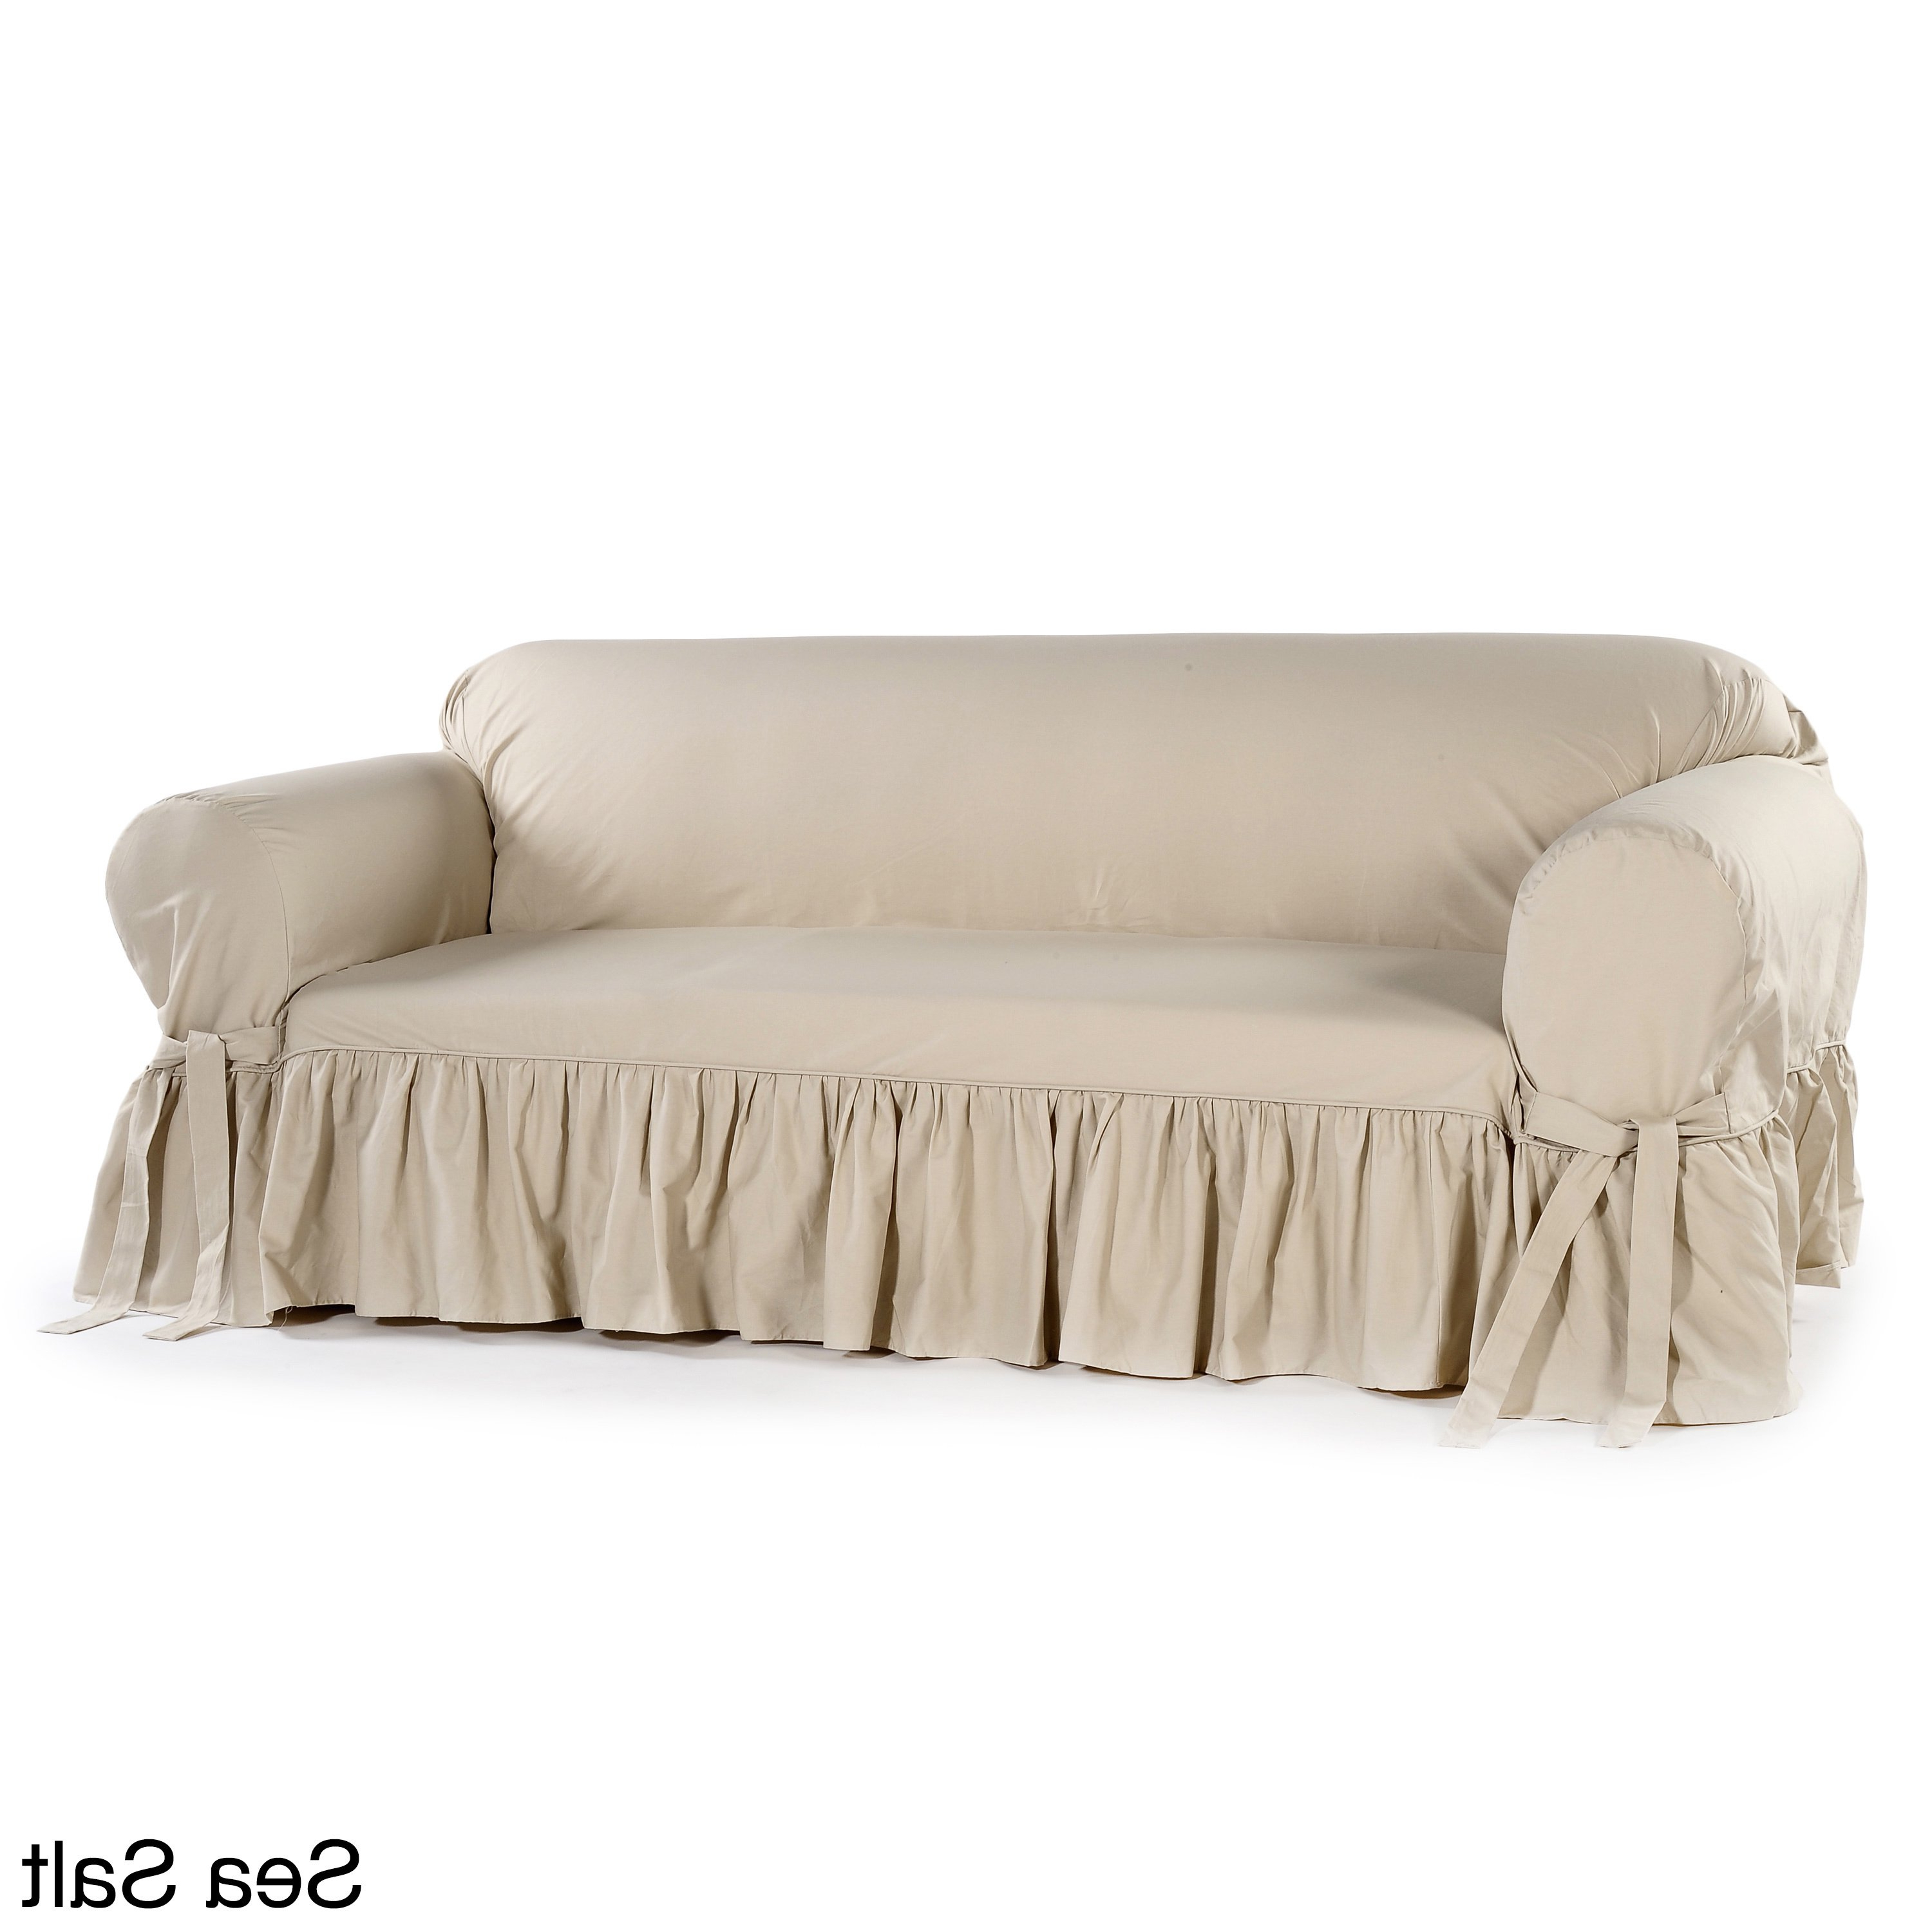 2018 Slipcovers For Chairs And Sofas With Regard To Shop Ruffled Cotton Loveseat Slipcover – Free Shipping Today (View 1 of 20)